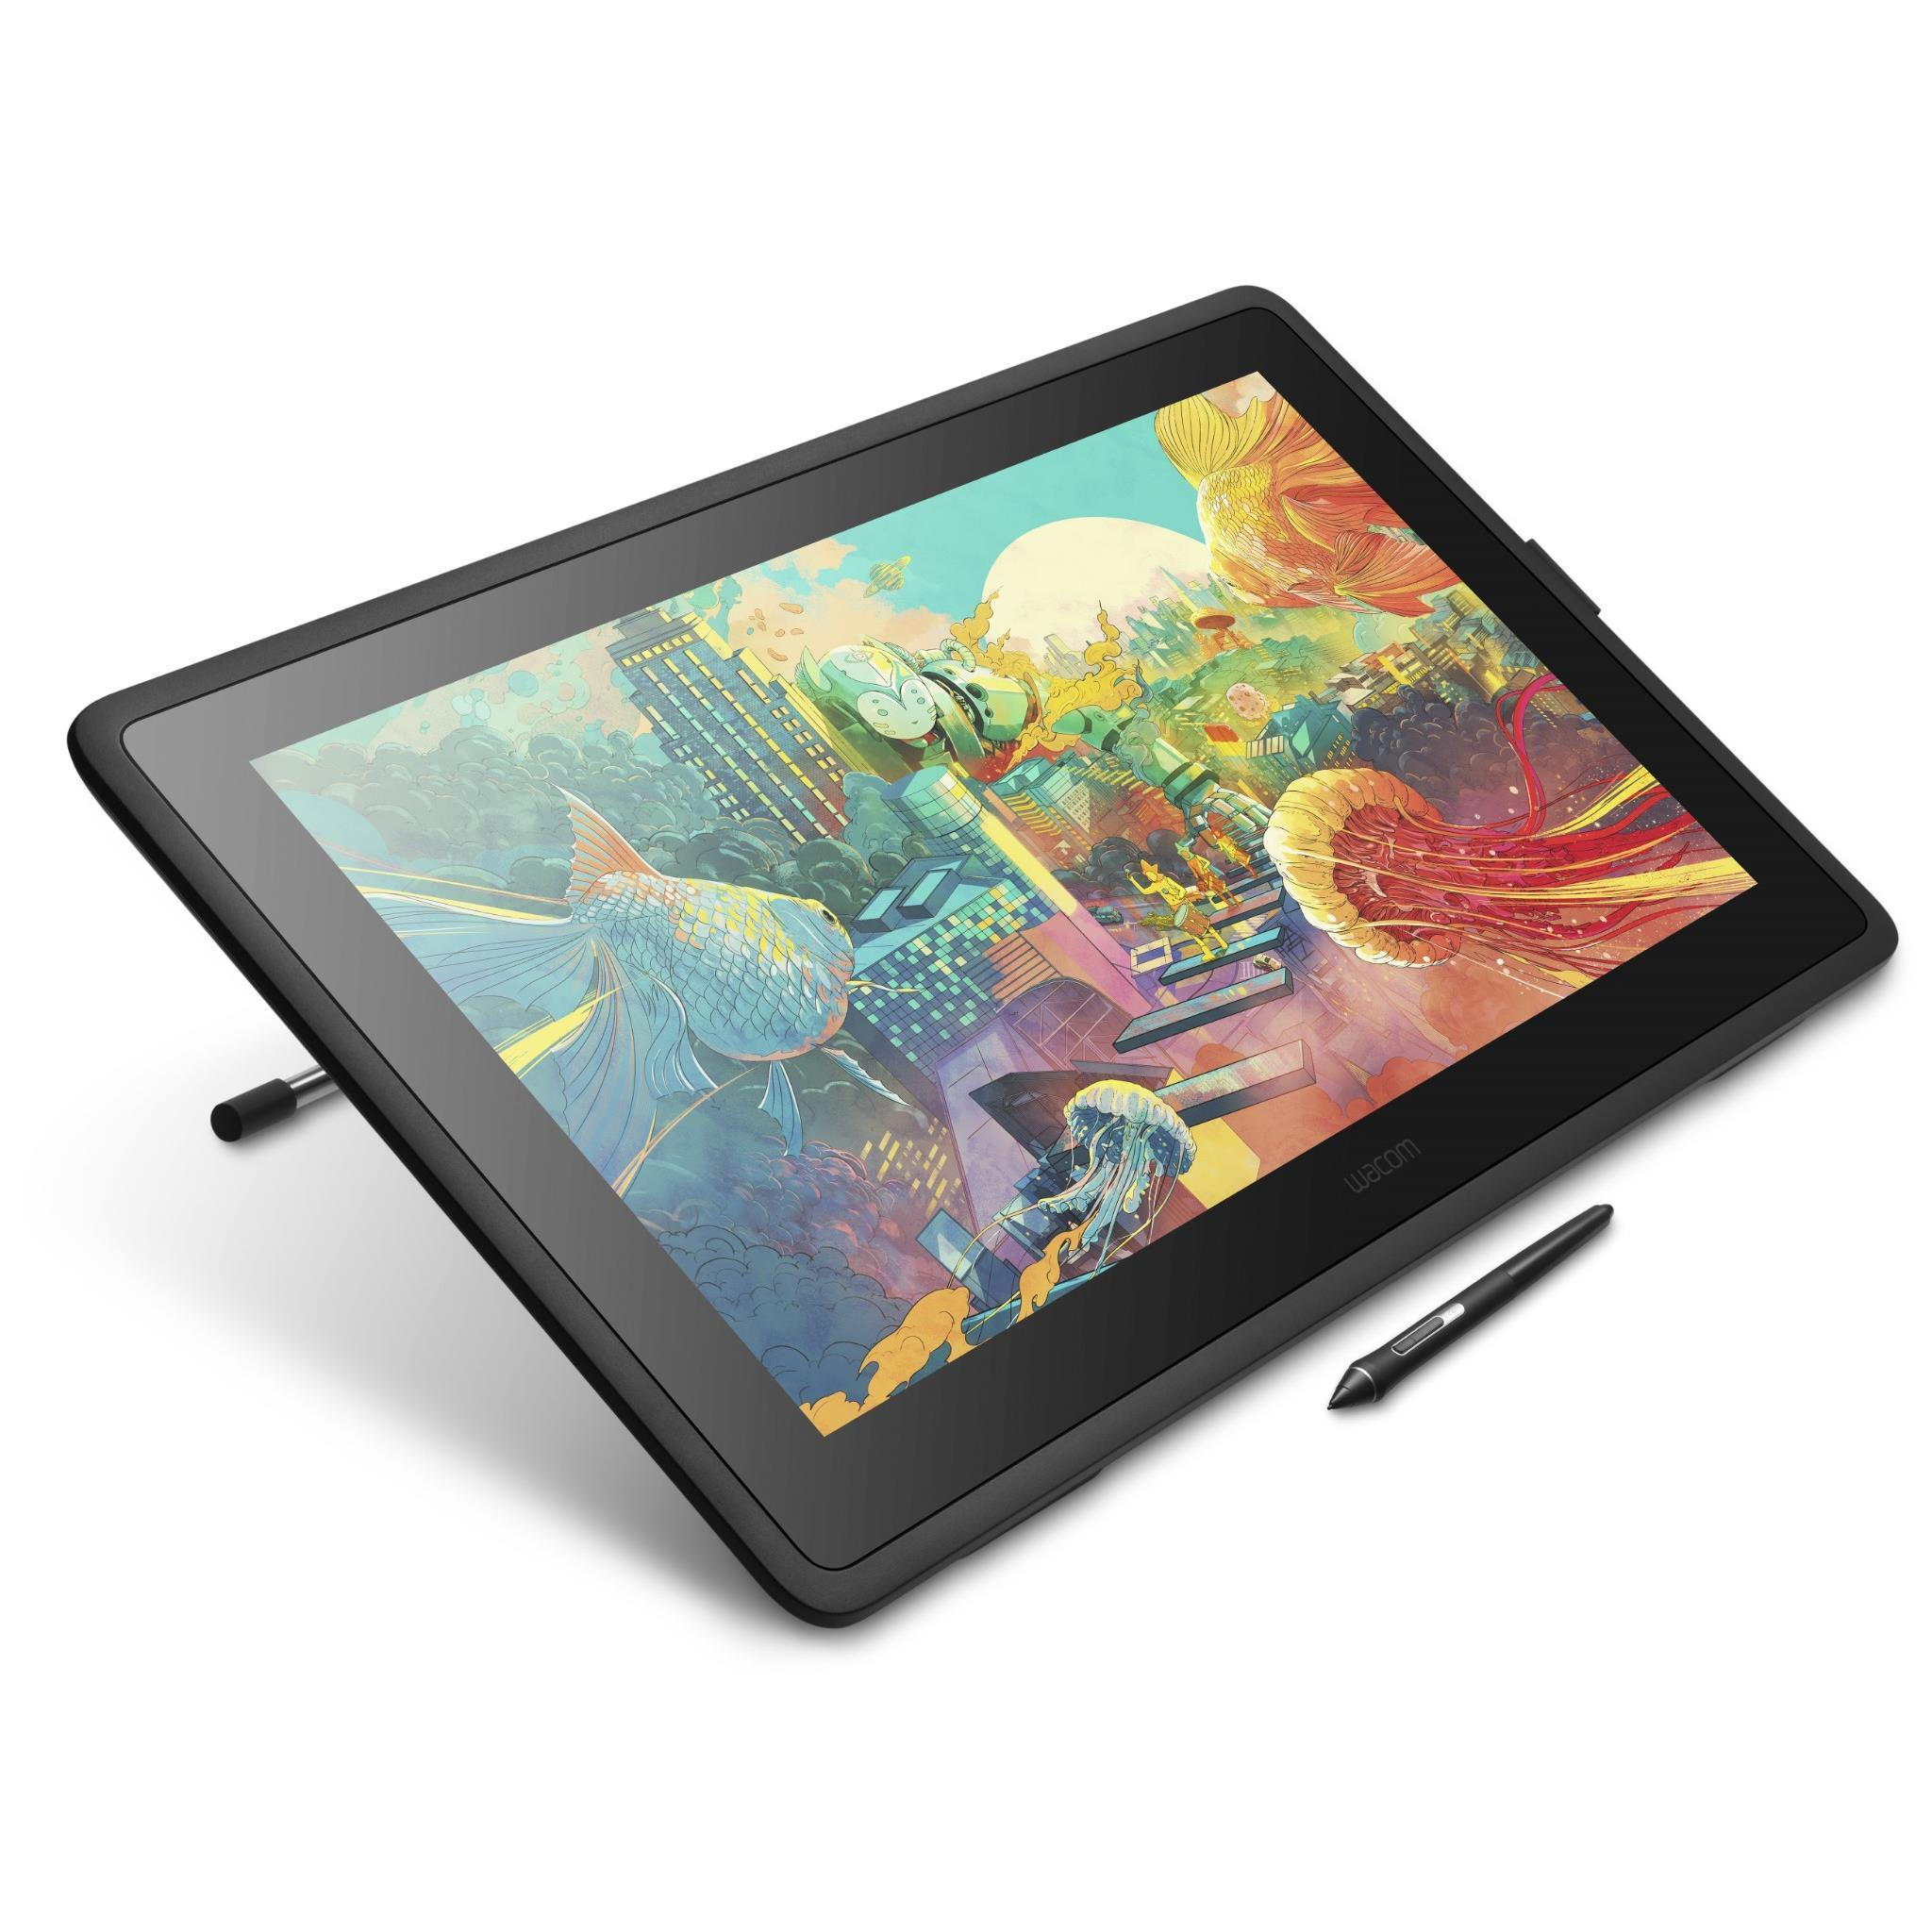 Wacom Cintiq 22″ Creative Pen Display